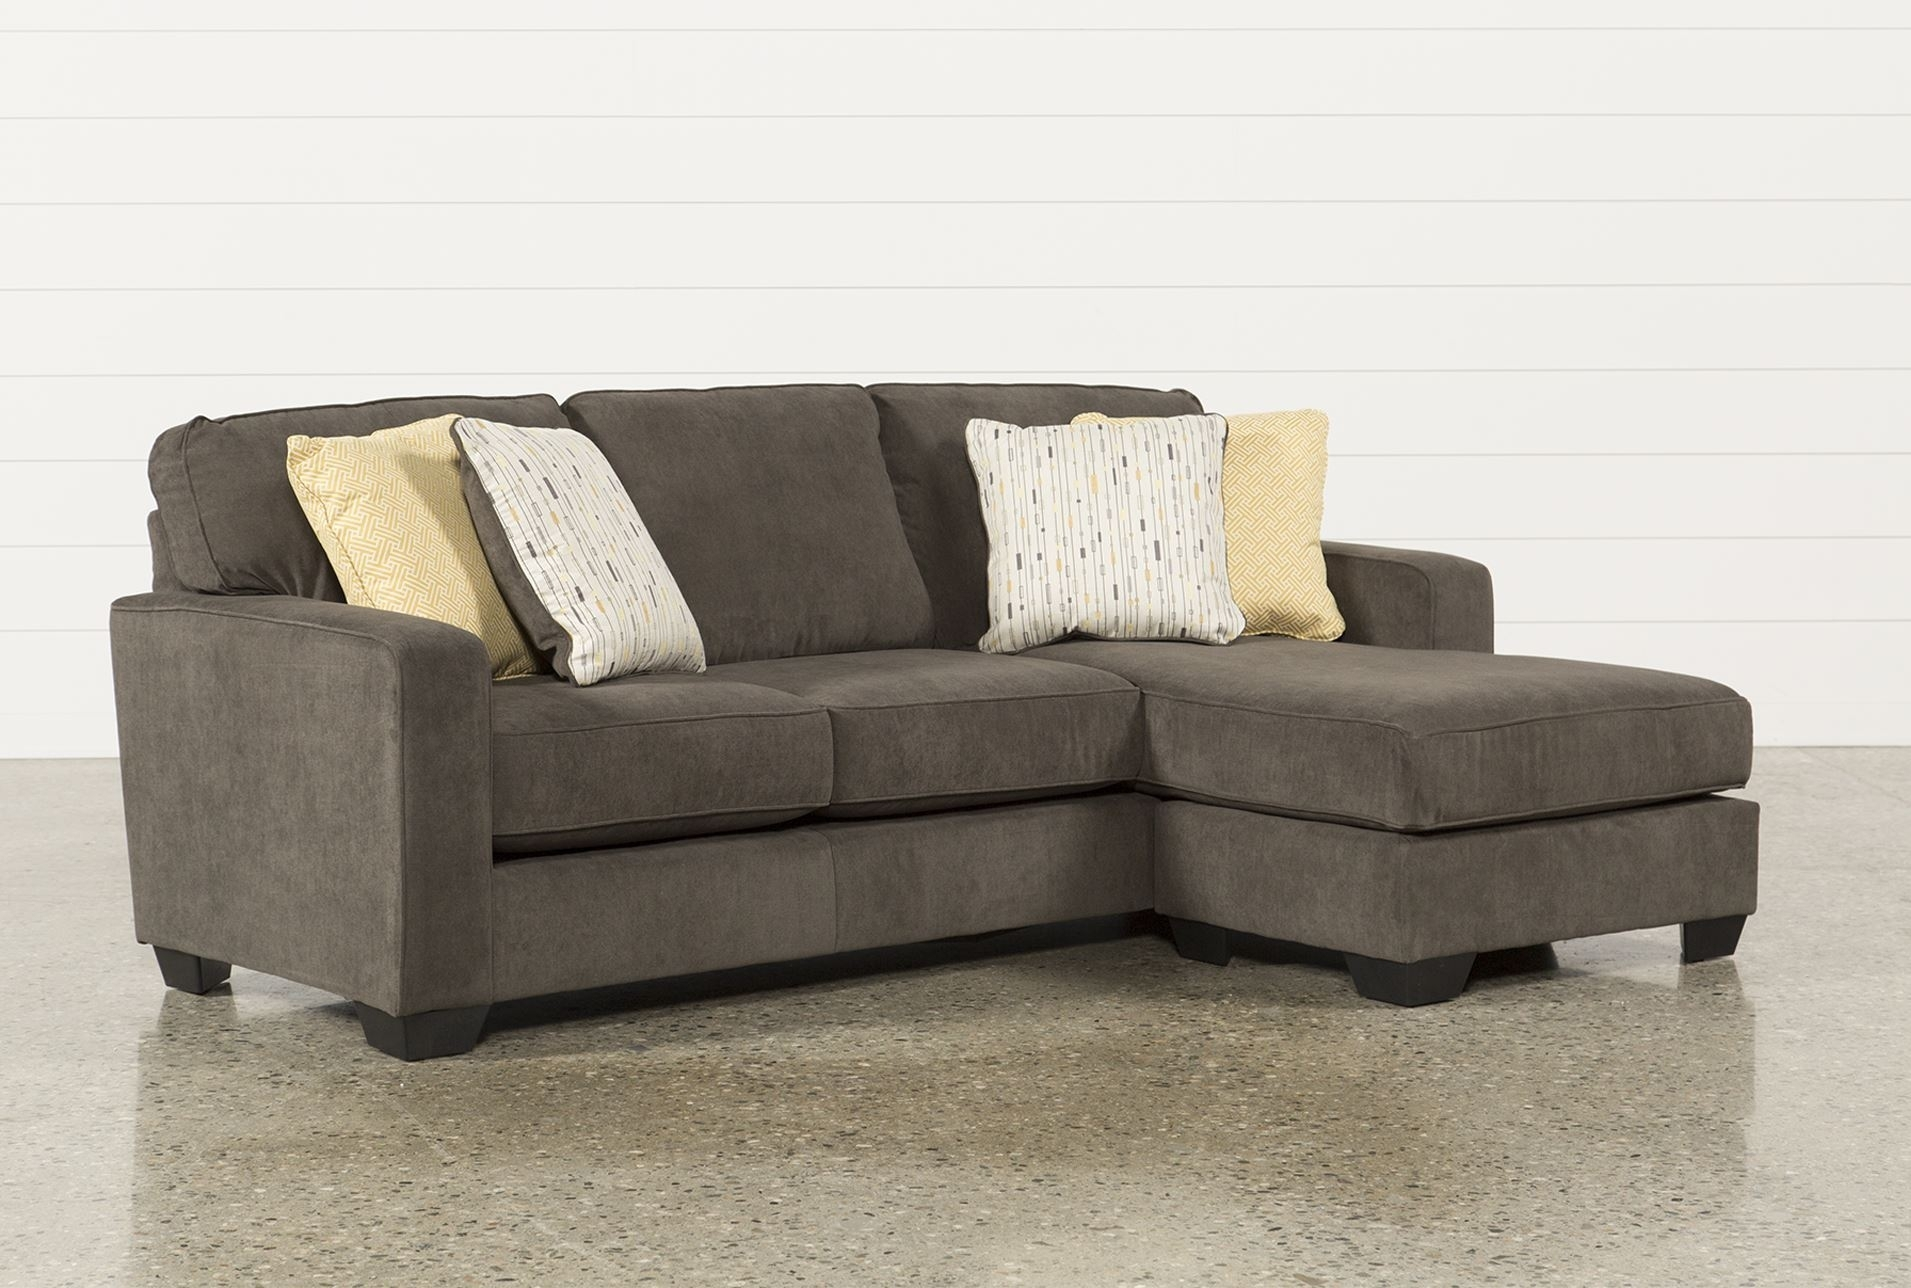 Sectional Sofa With Chaise | Aifaresidency With Living Spaces Sectional Sofas (Image 8 of 10)